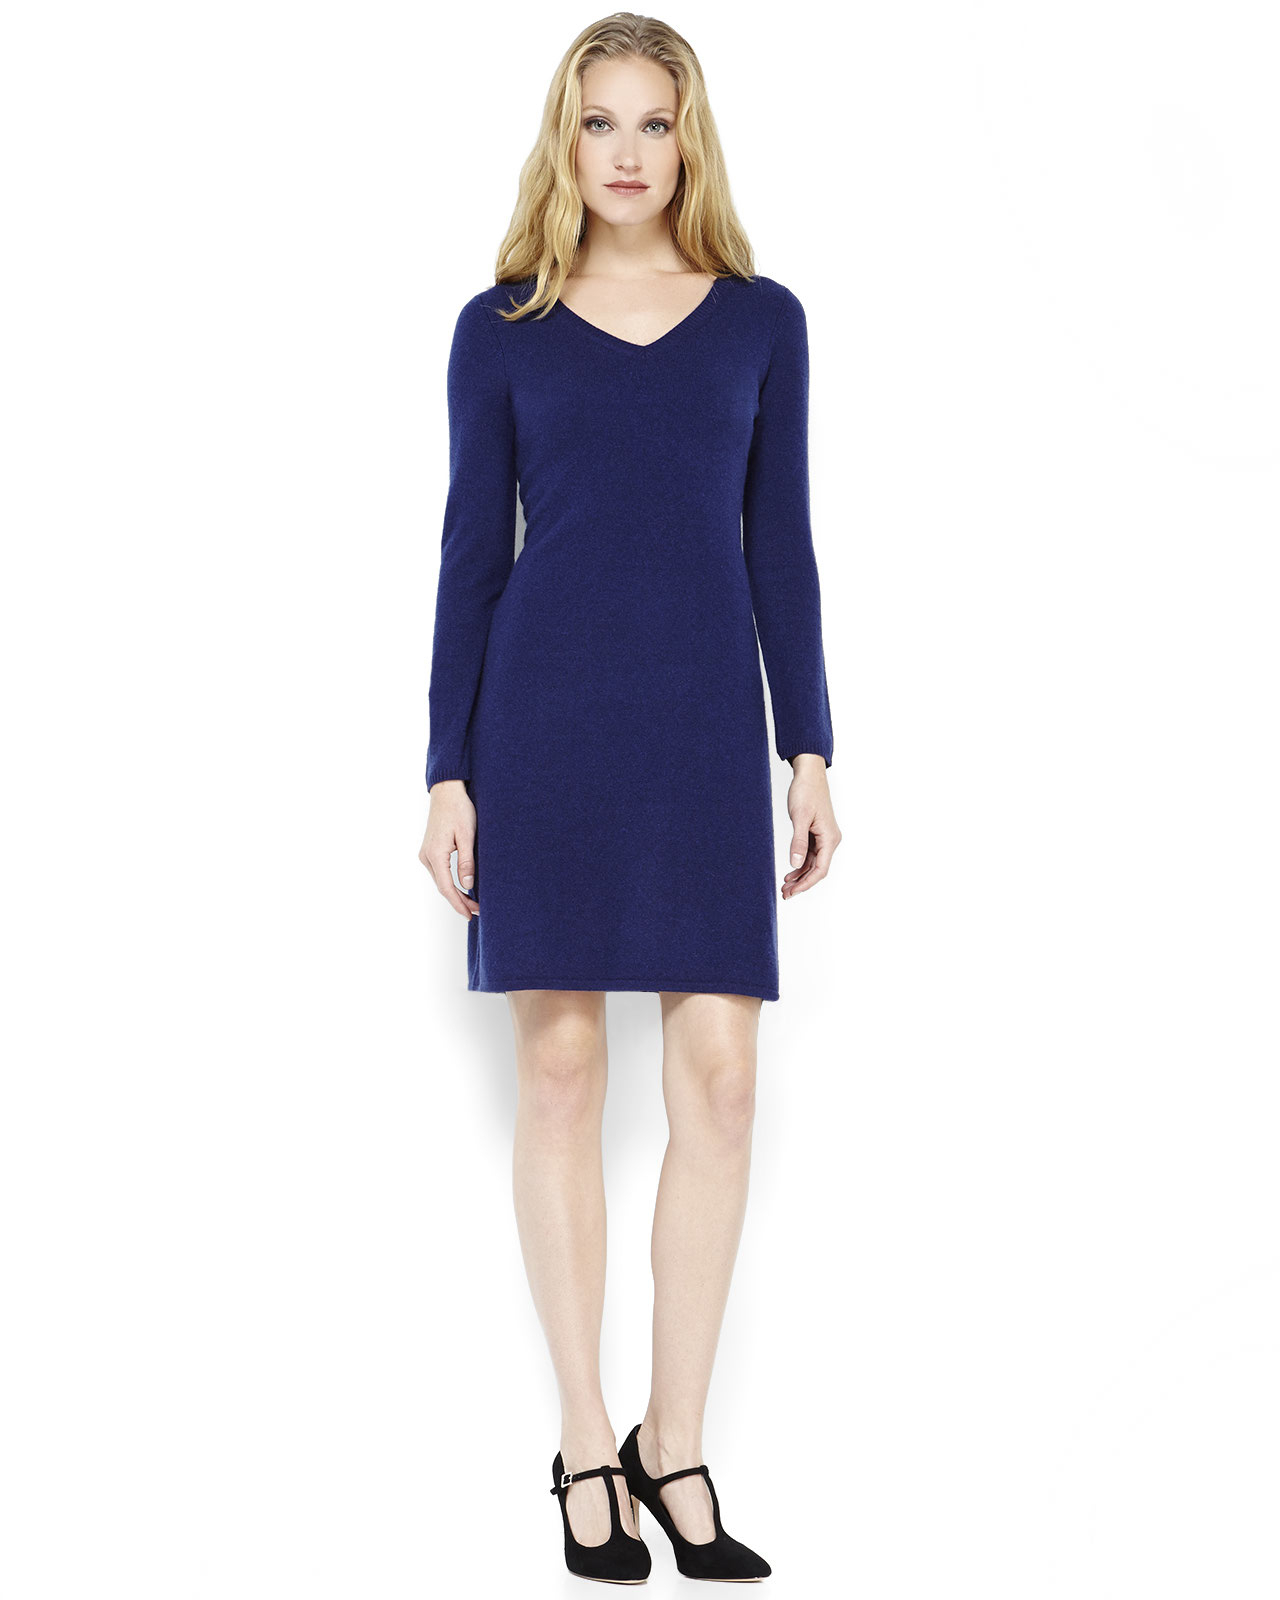 Sofia cashmere Navy Cashmere Sweater Dress in Blue (Navy) | Lyst